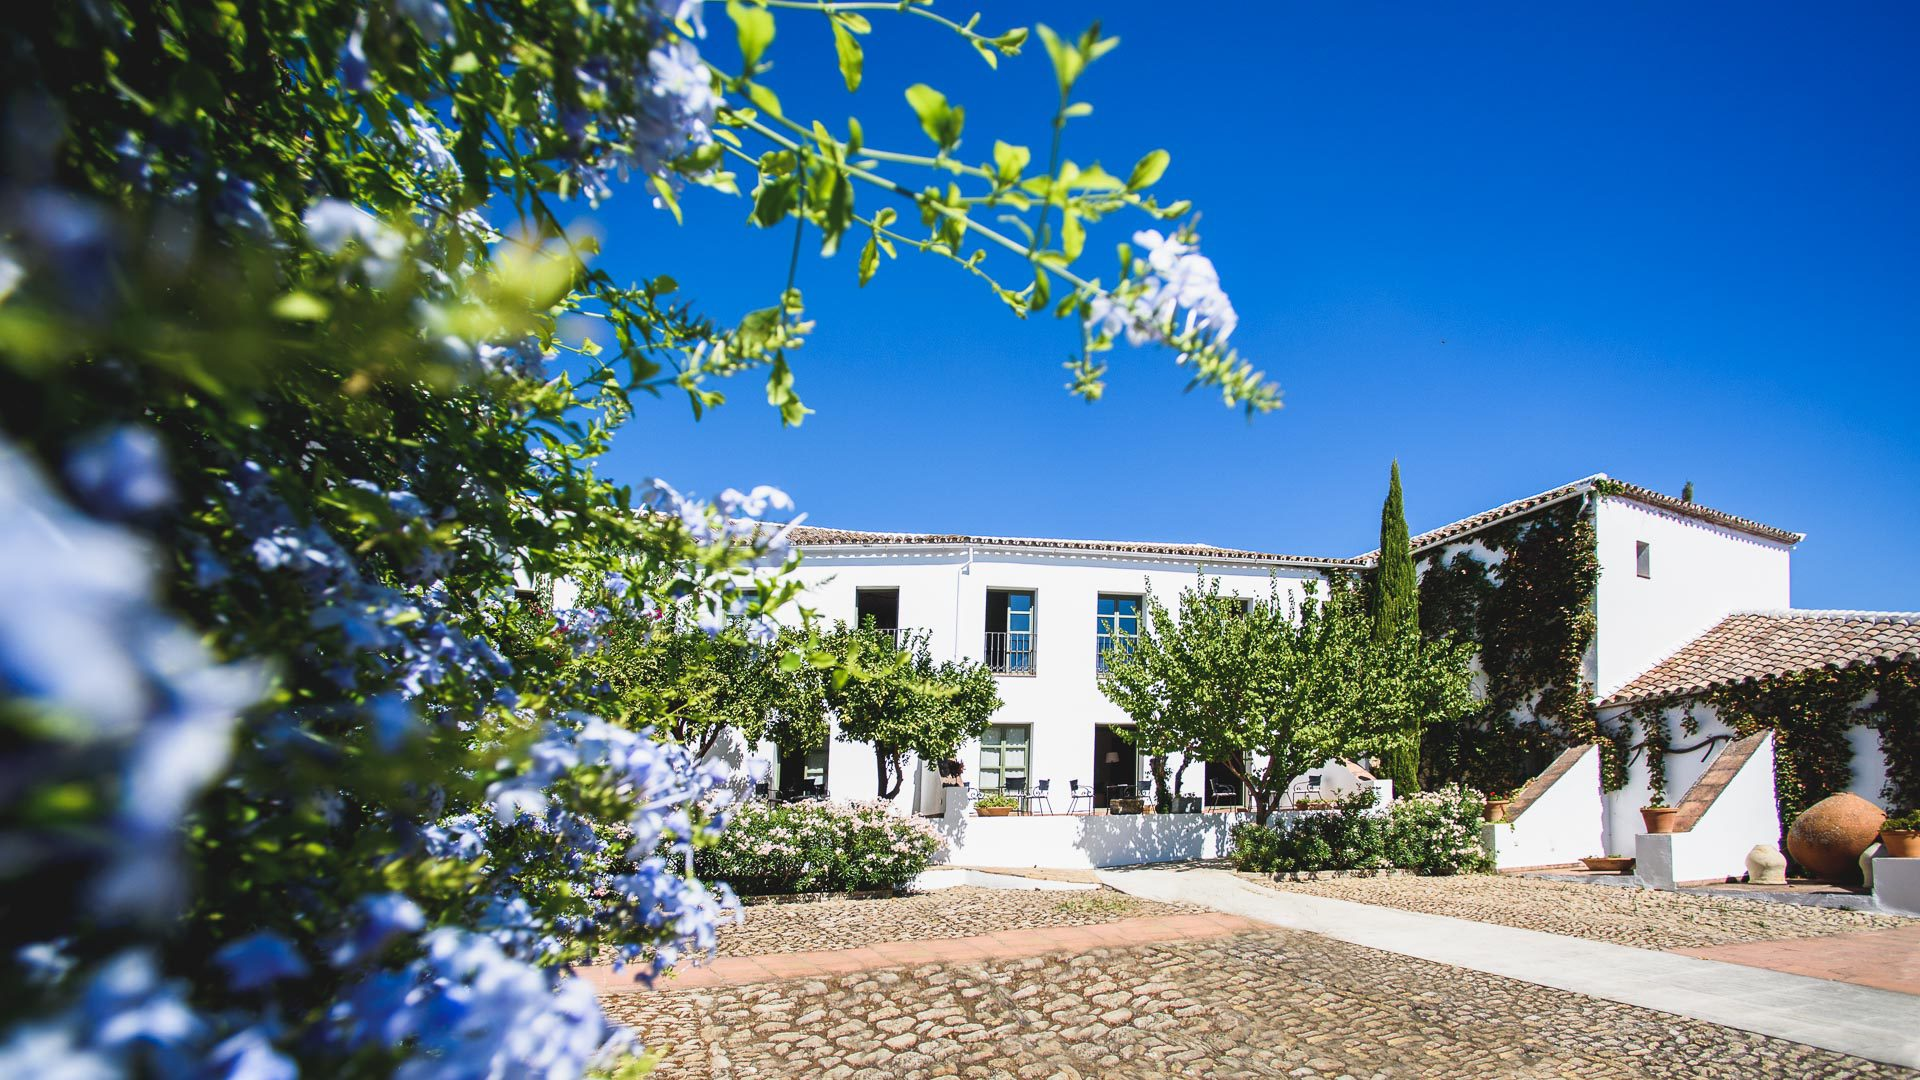 andalusia wedding venues